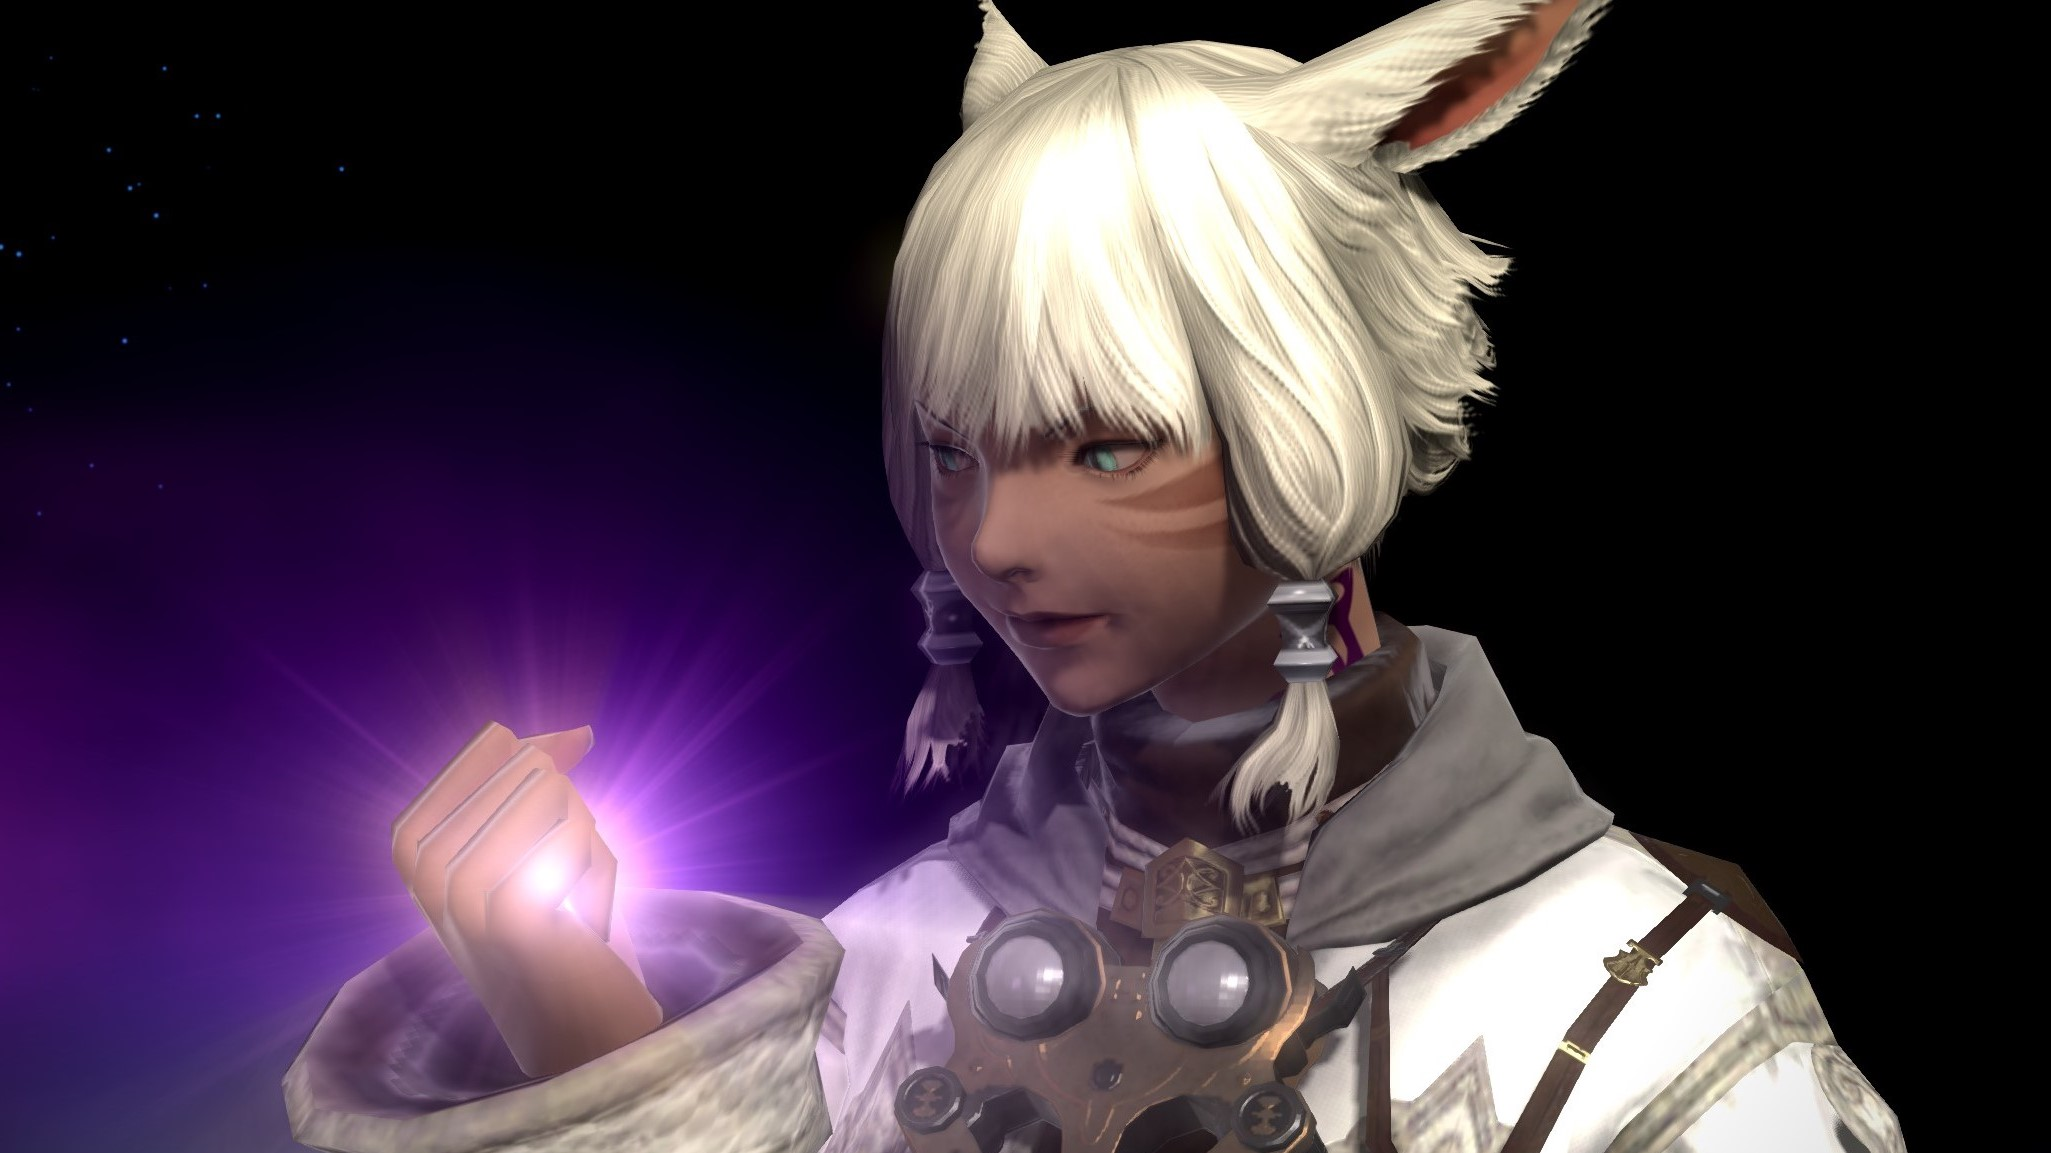 Final Fantasy 14 beginner's guide: getting started and